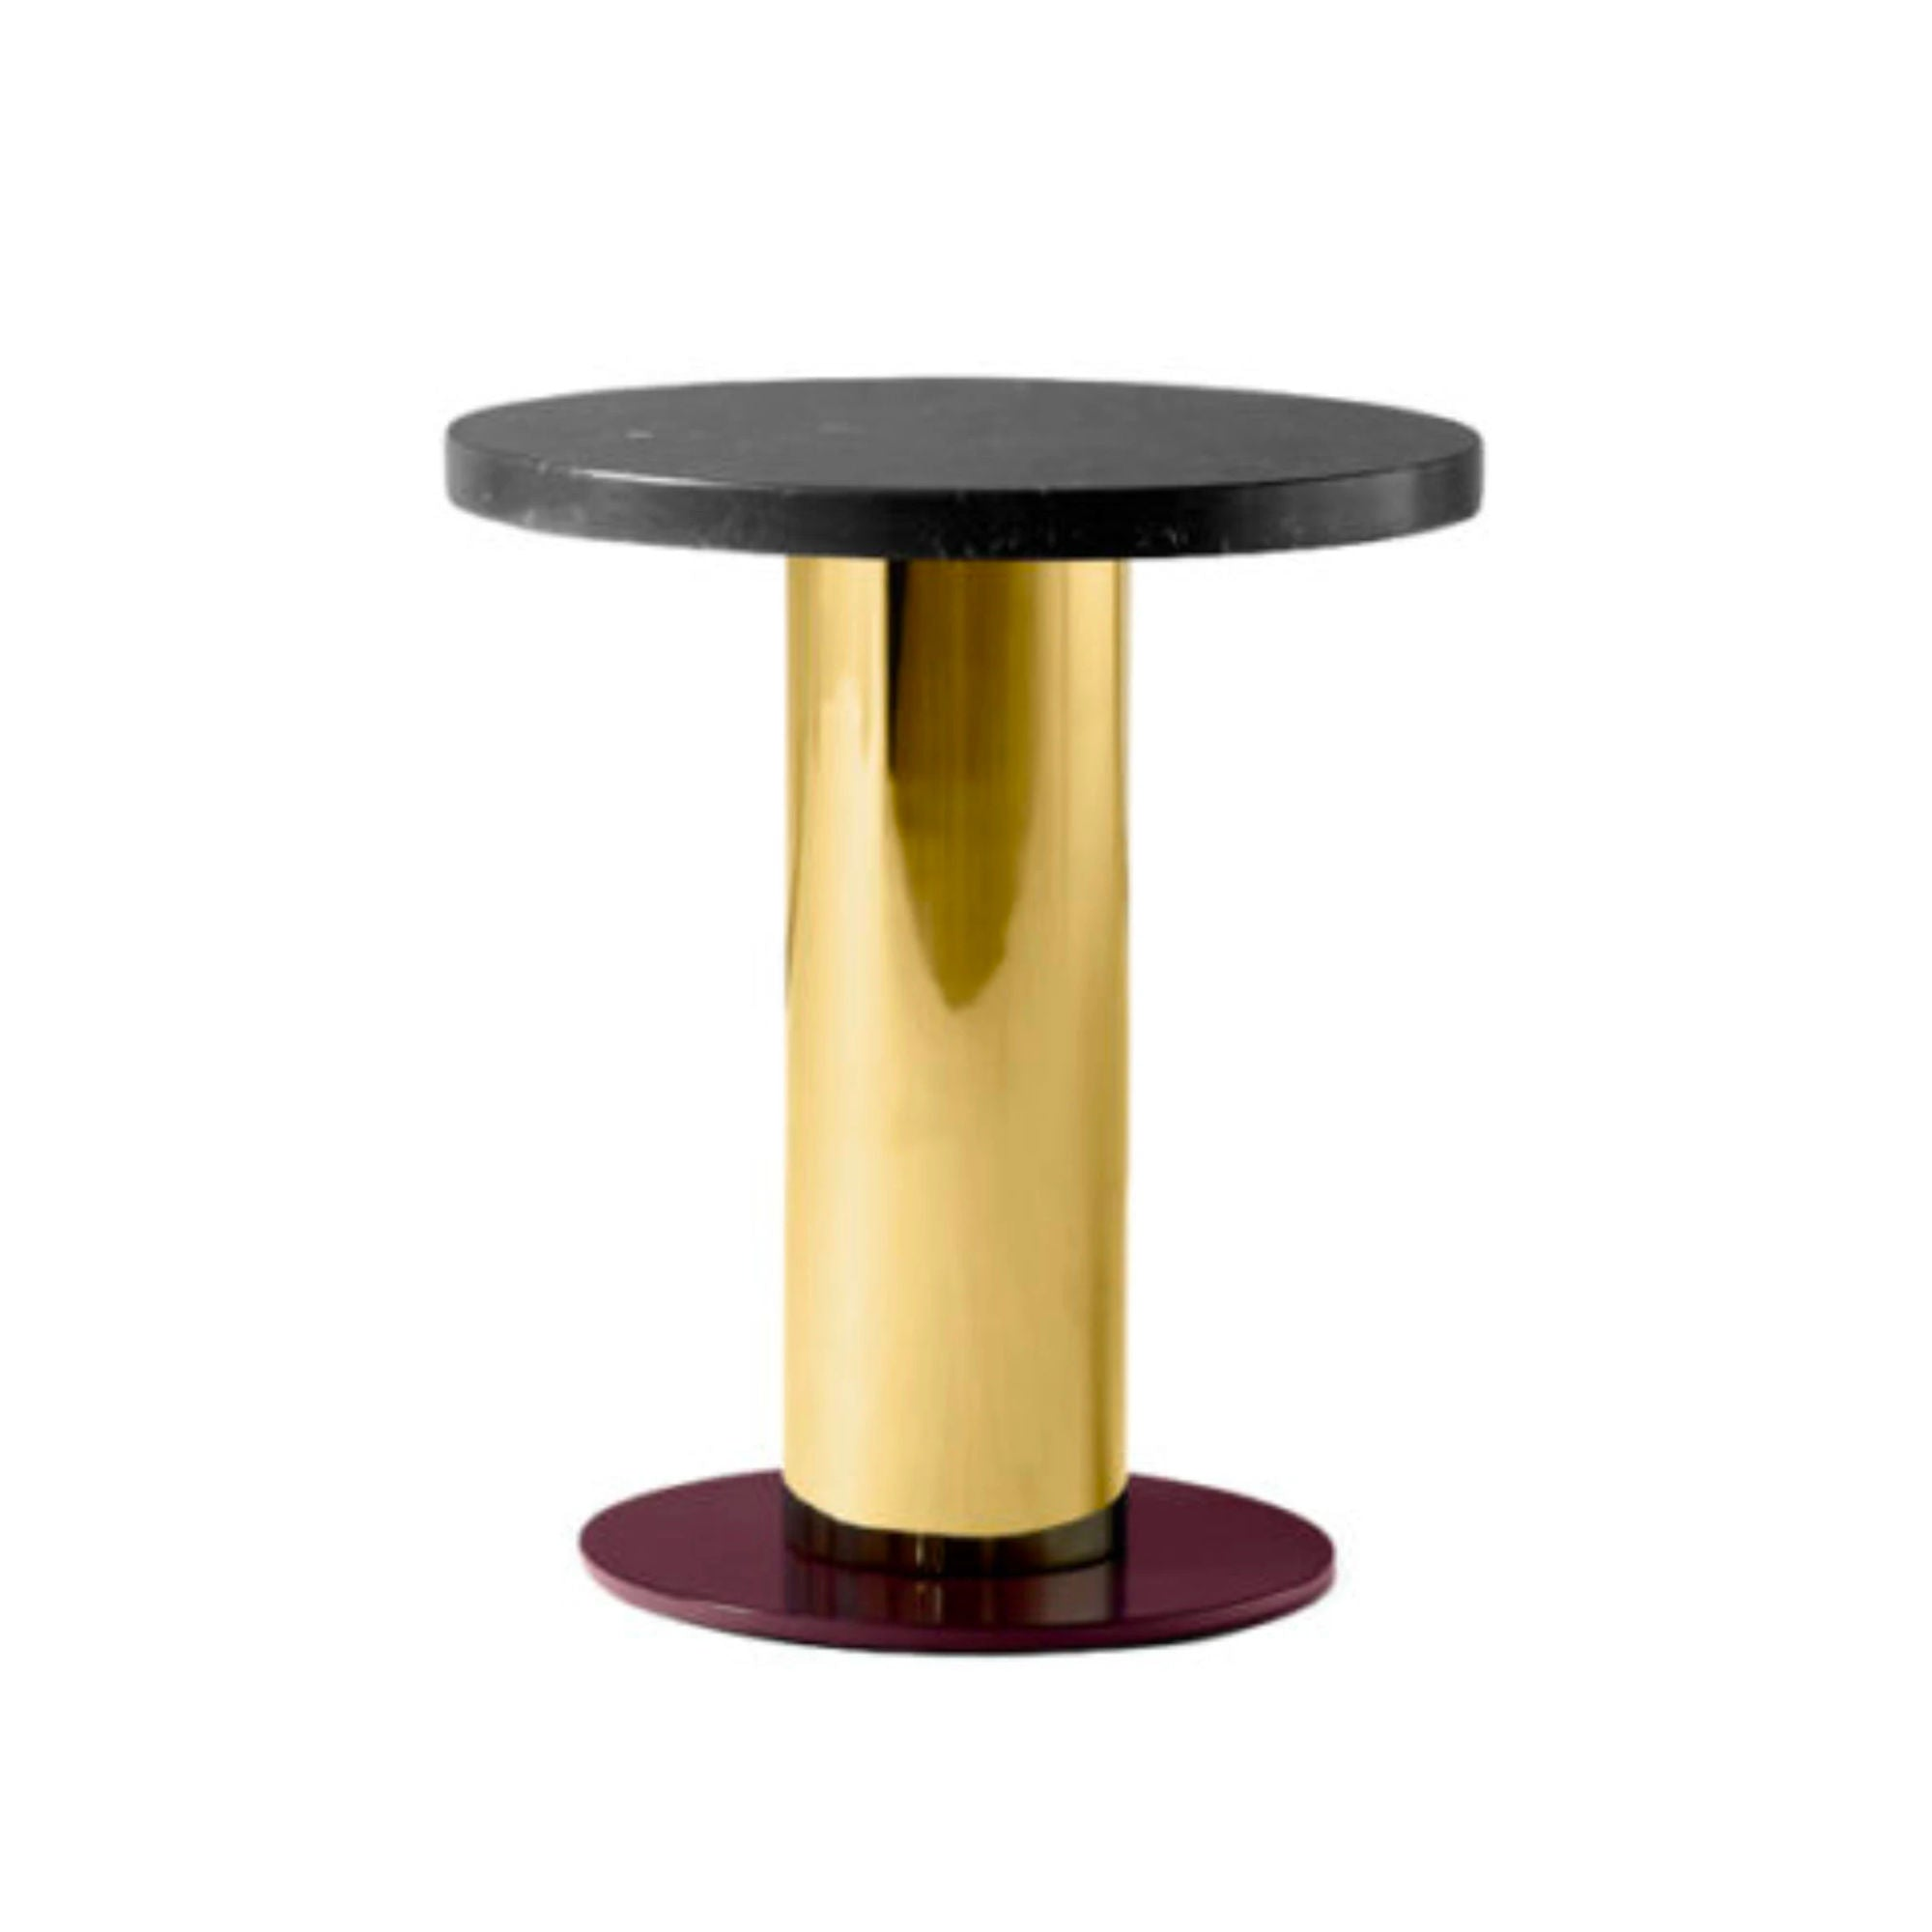 &Tradition JH19 Mezcla Side Table Ø42 , Nero Marquina/Brass/Burgundy